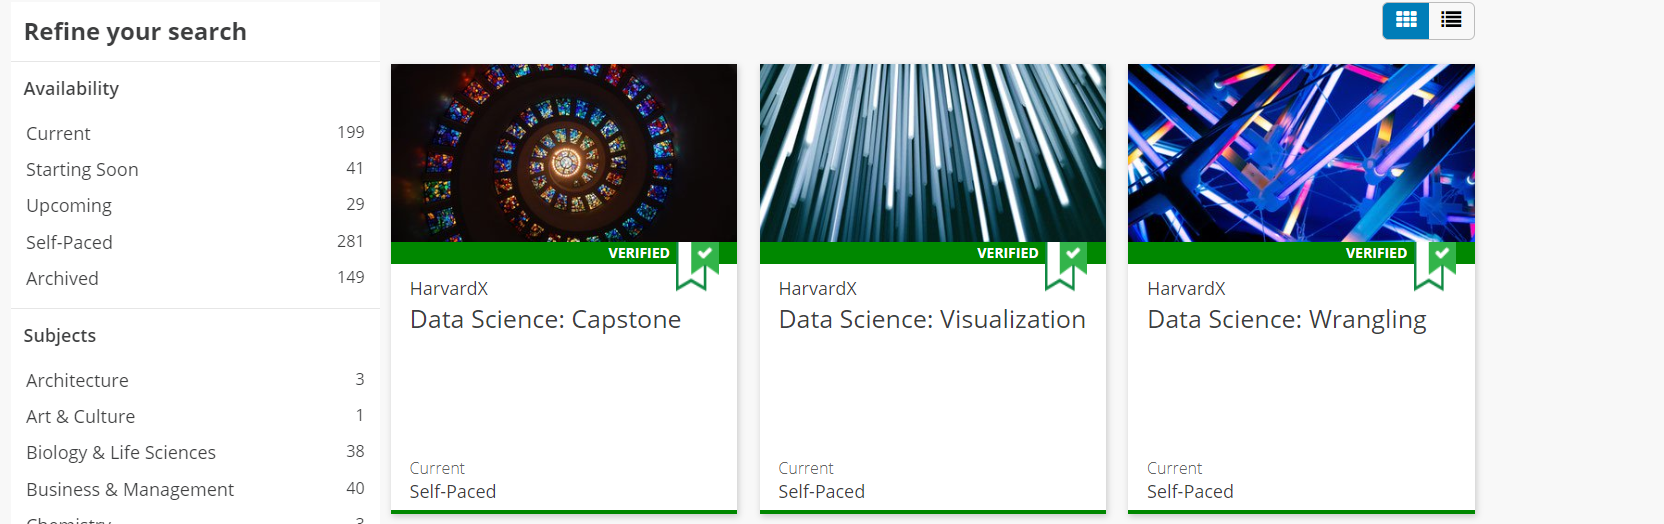 edX Courses Data Science